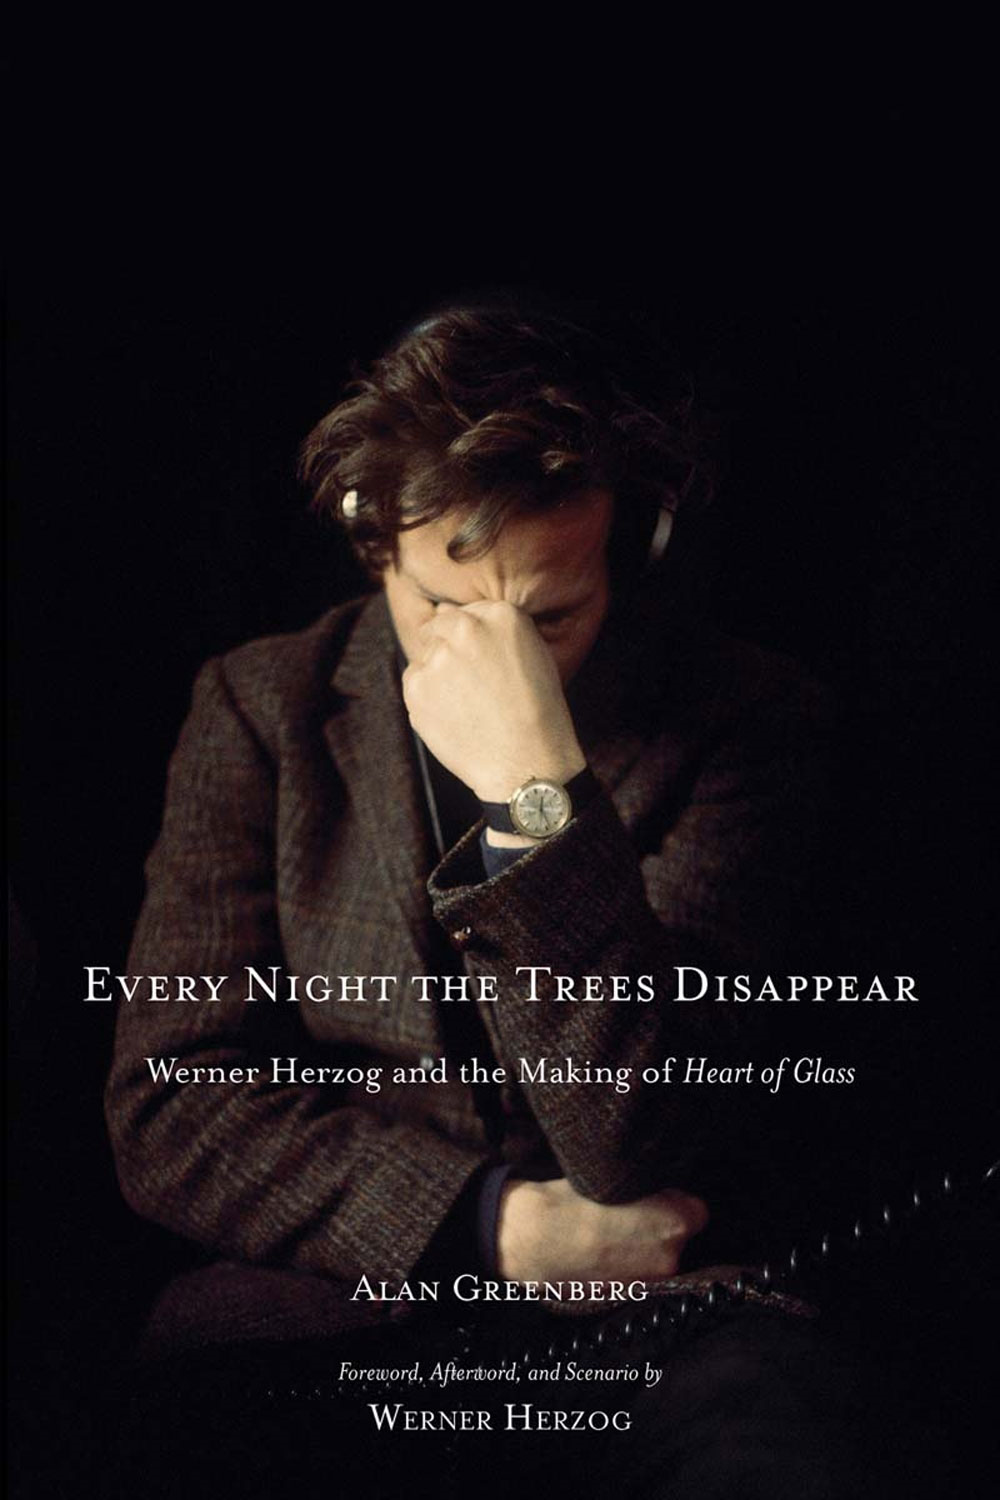 Every Night the Trees Disappear: Werner Herzog and the Making of Heart of Glass